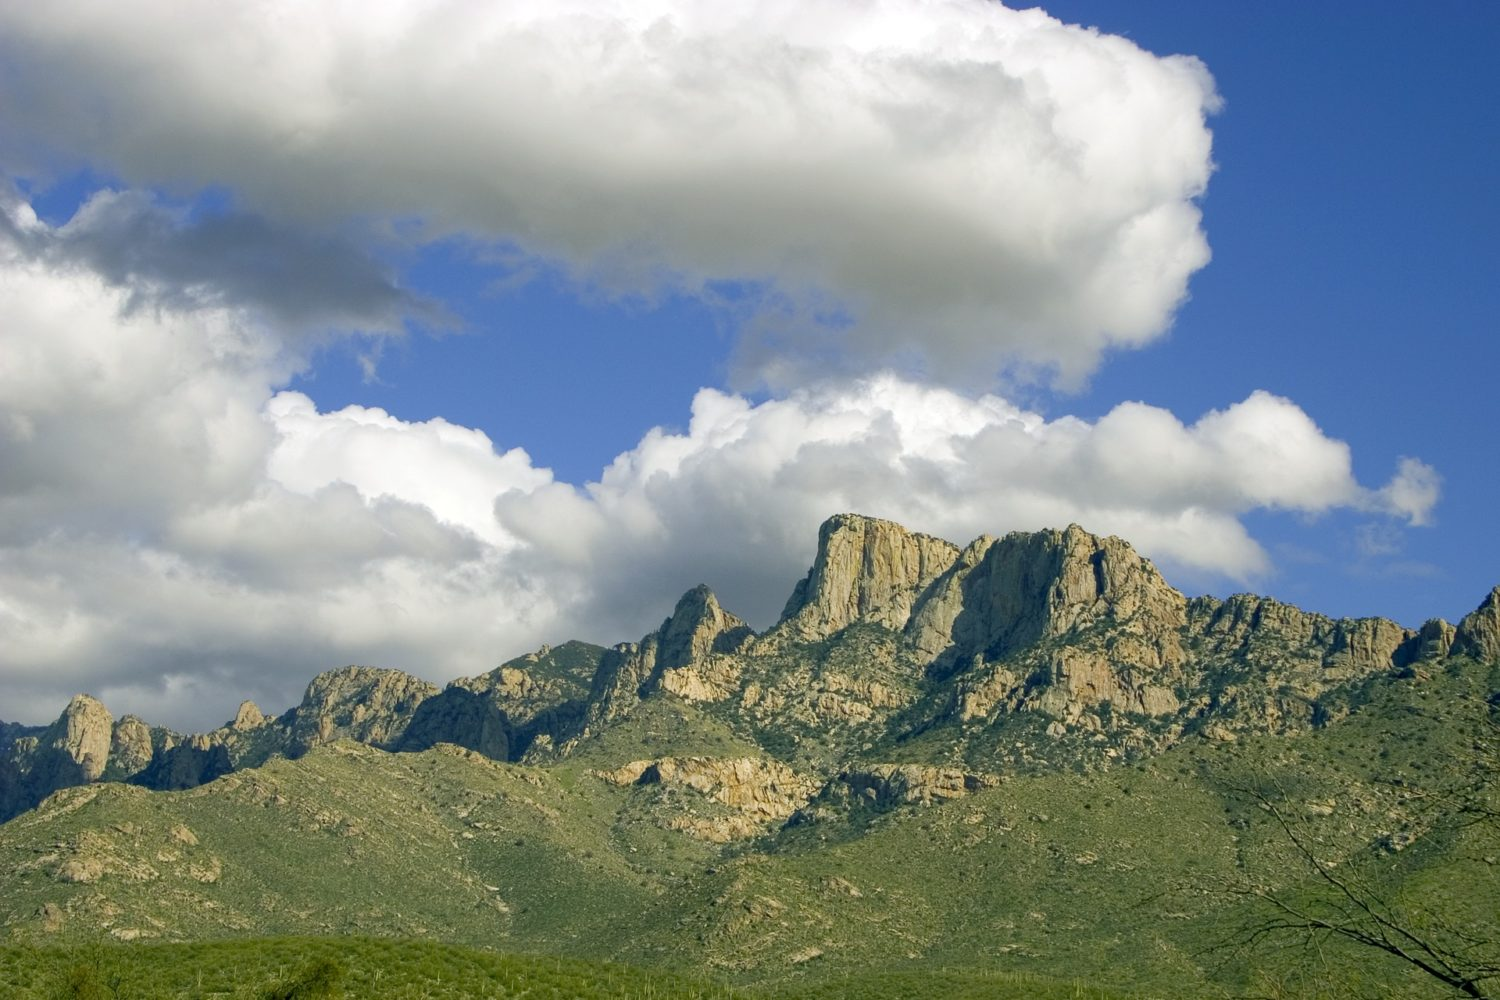 The towering Catalina Mountains are your backdrop in Tucson